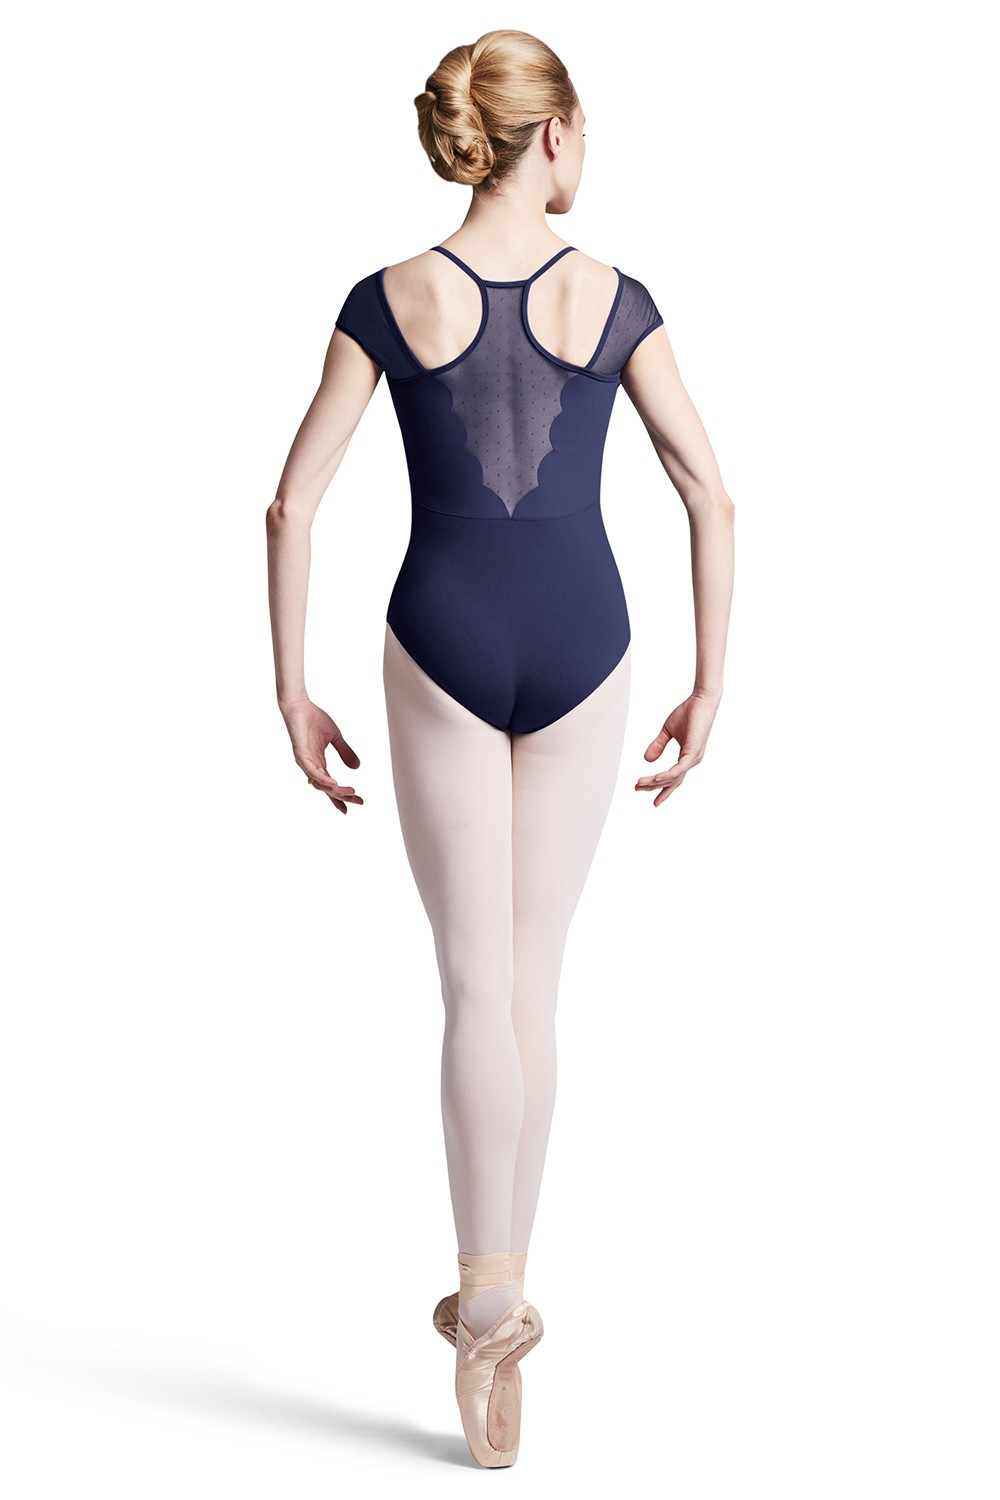 Fedlem - Jeune Fille Children's Dance Leotards